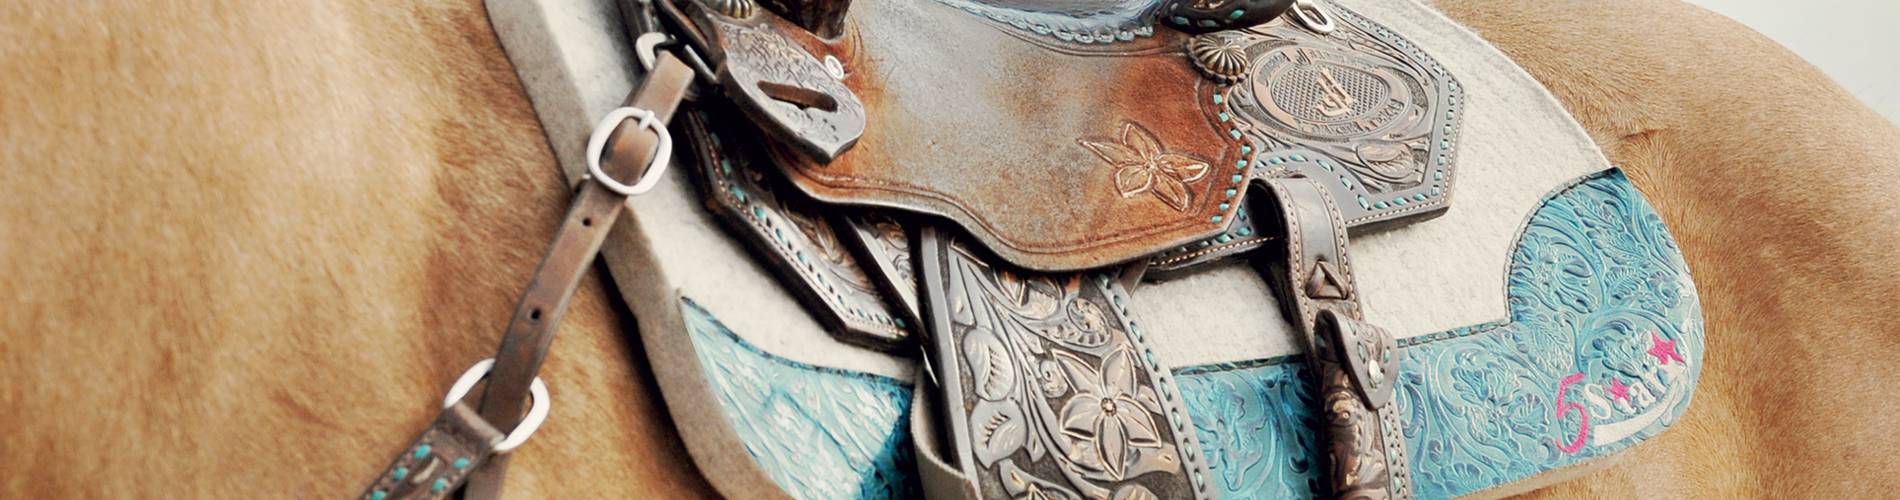 Western 5 Star Saddle Pads | 5 Star Equine, manufacturer of the